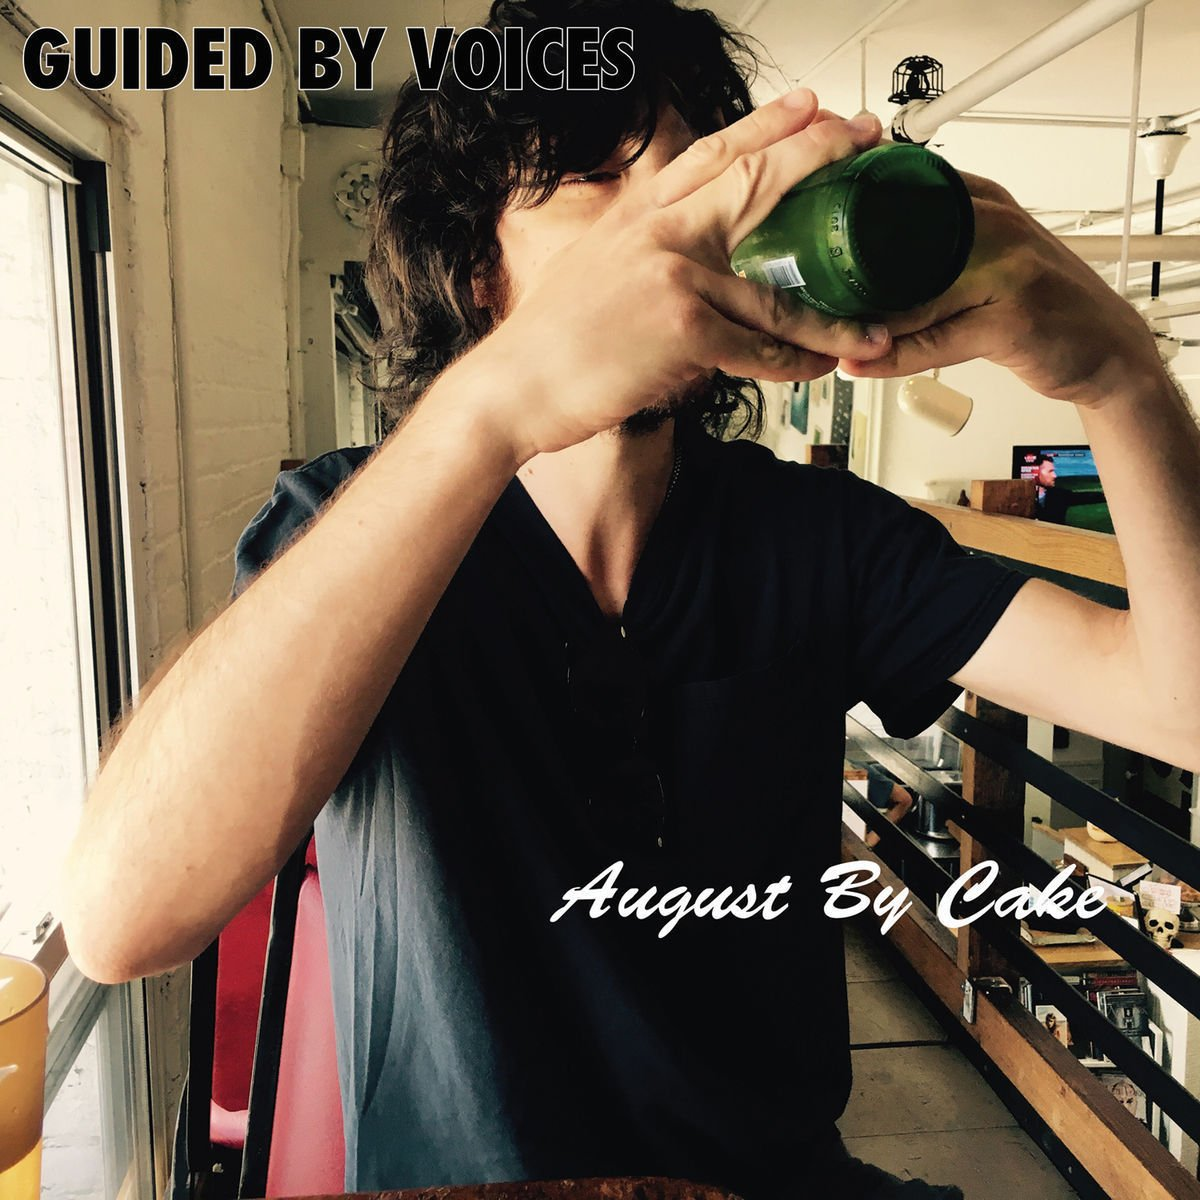 'August By Cake' by Guided By Voices